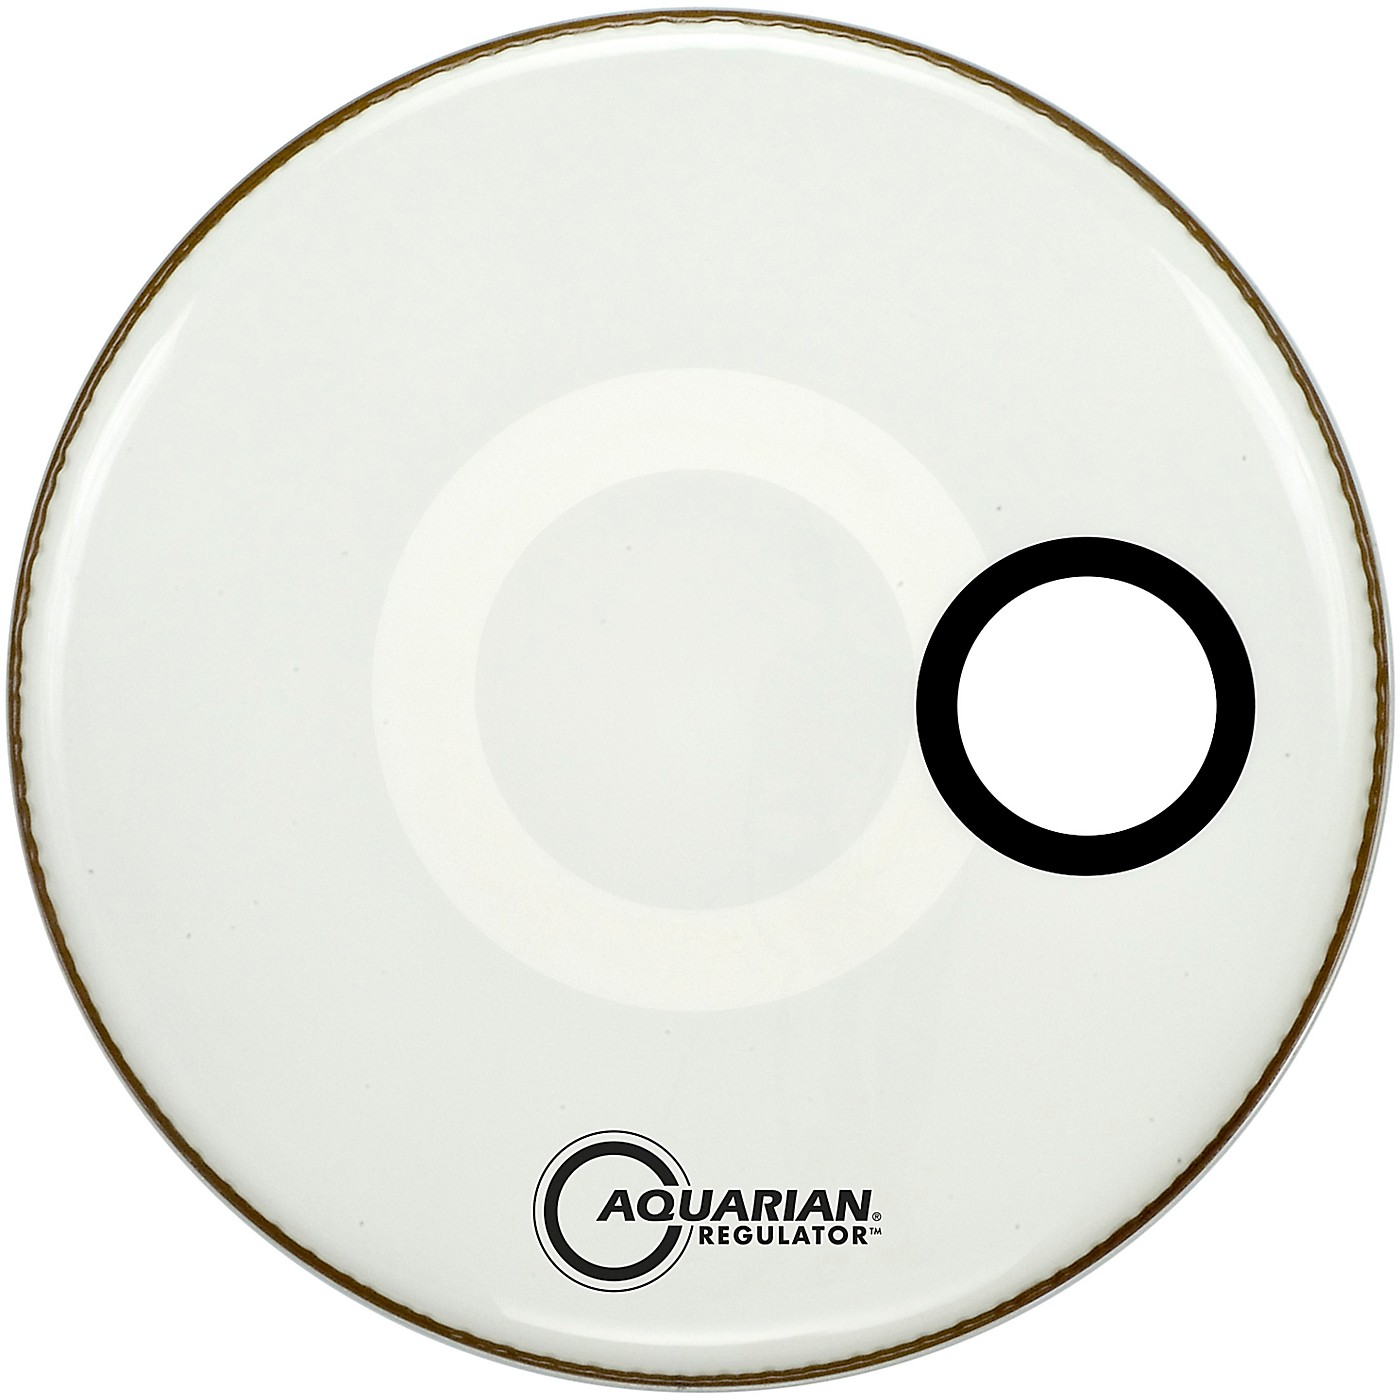 Aquarian Regulator Off-Set Hole Gloss White Bass Drum Head thumbnail